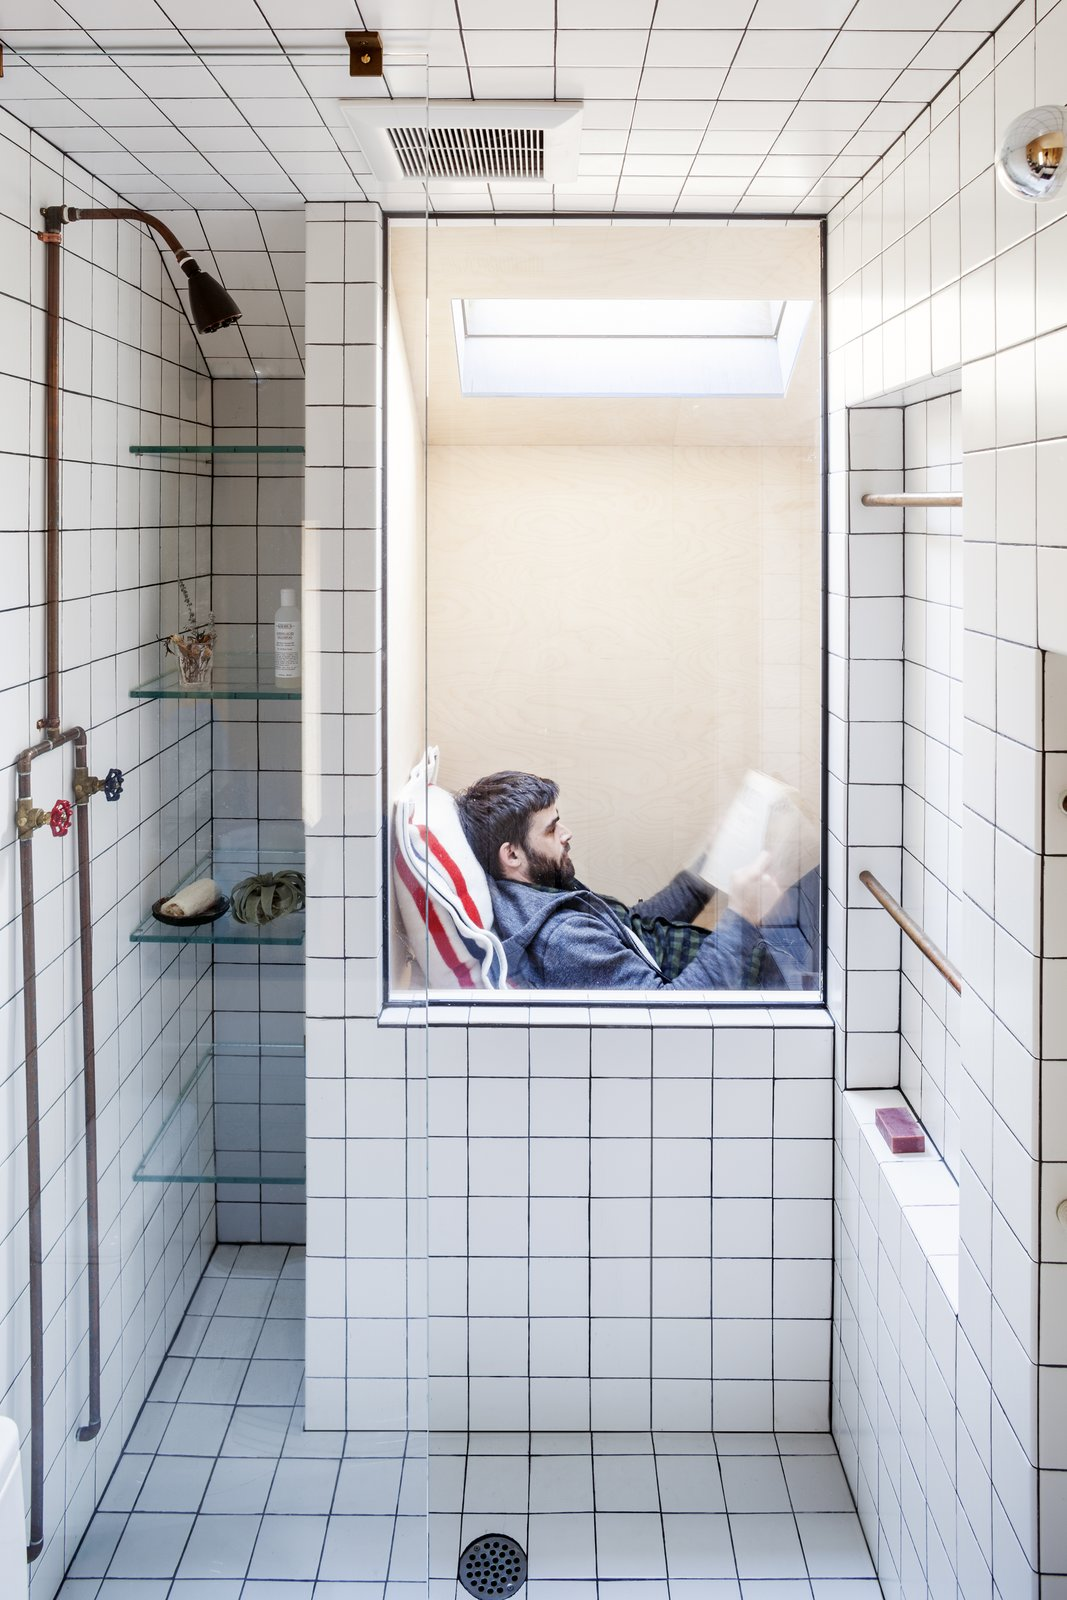 Bath, Subway Tile, Ceramic Tile, and Open Occupying the perch visible through the open shower  Best Bath Subway Tile Open Photos from Micro Cabin